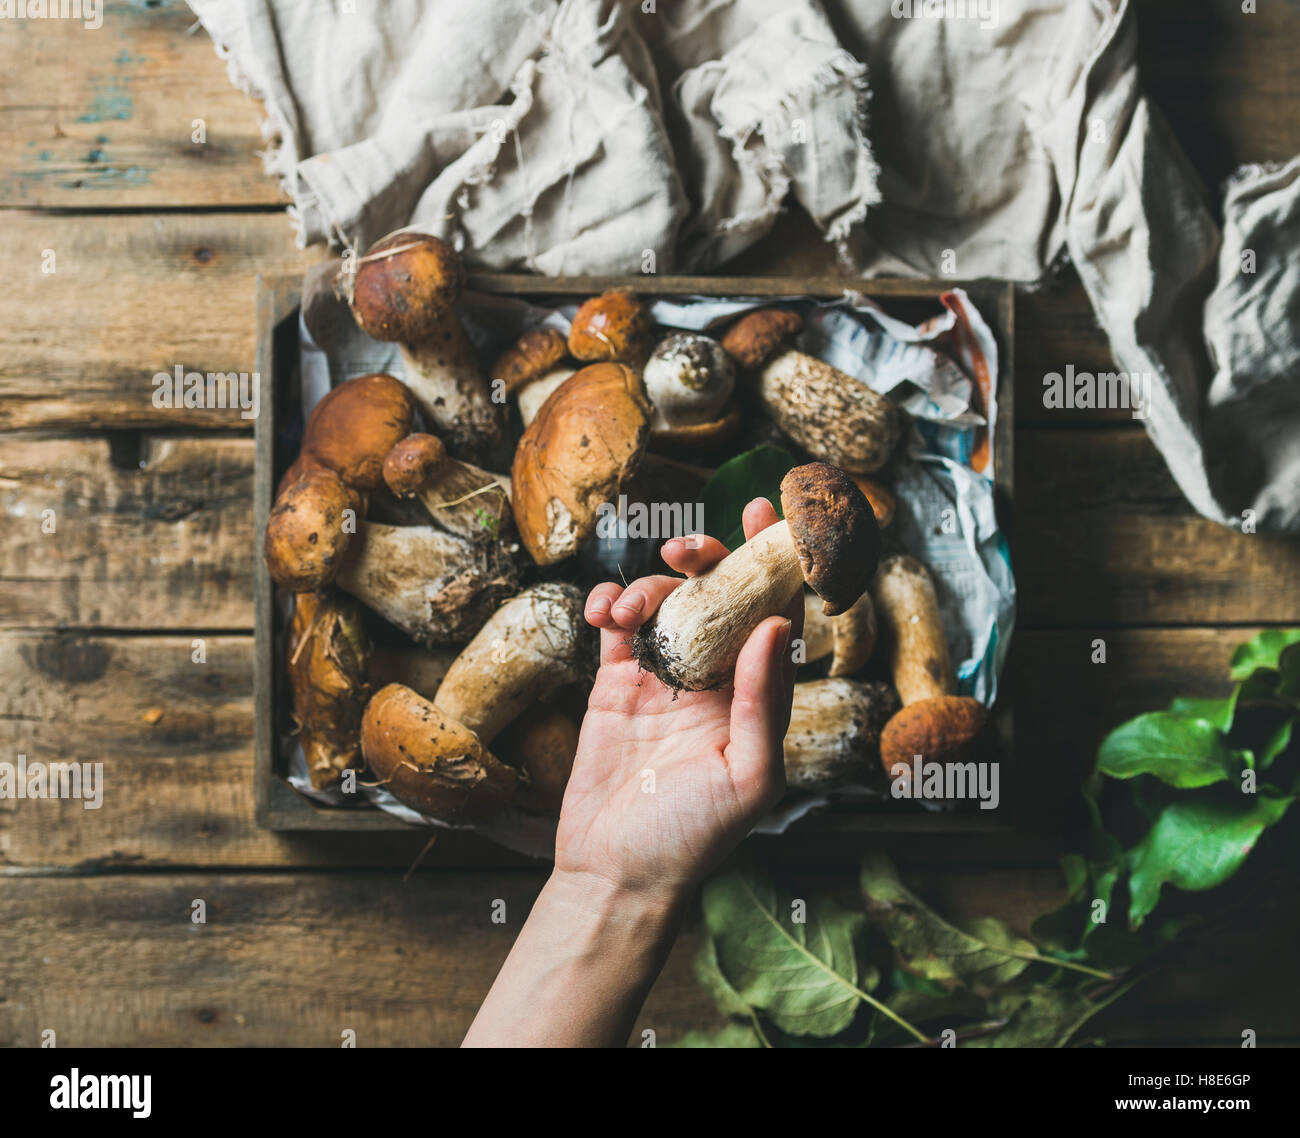 Fresh picked Porcini mushrooms in wooden tray over rustic background and woman's hand holding one penny ben, - Stock Image